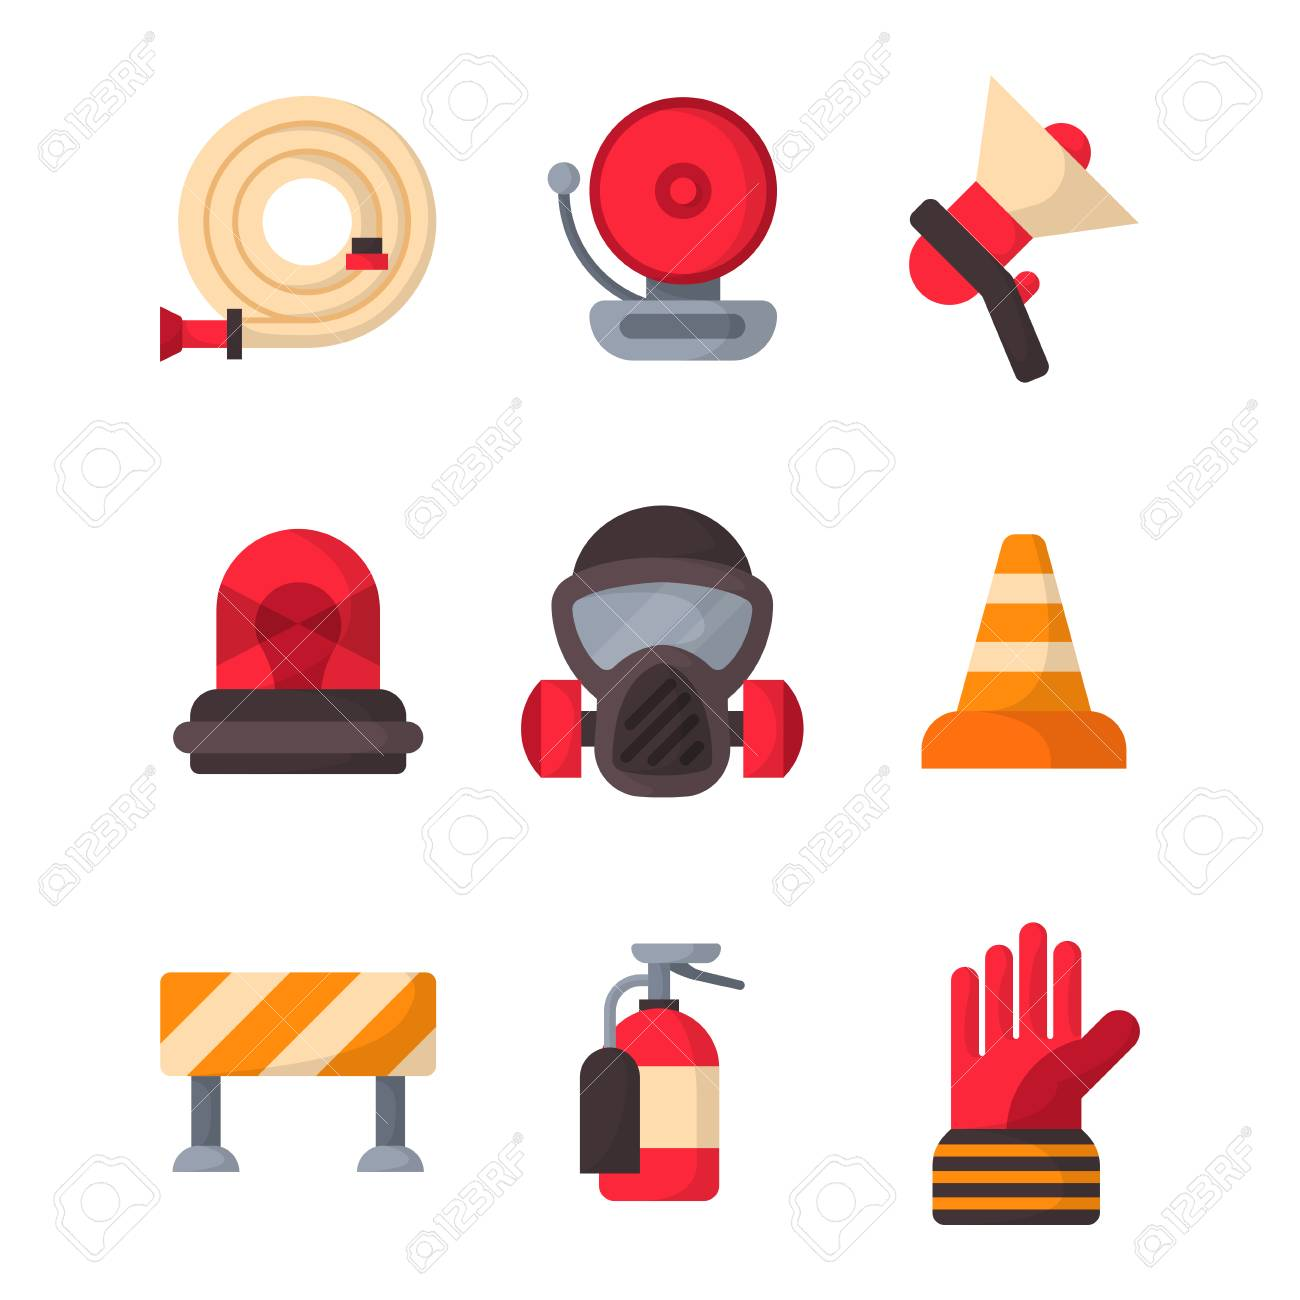 Fire Safety Equipment Emergency Icons Firefighter Symbols Safe